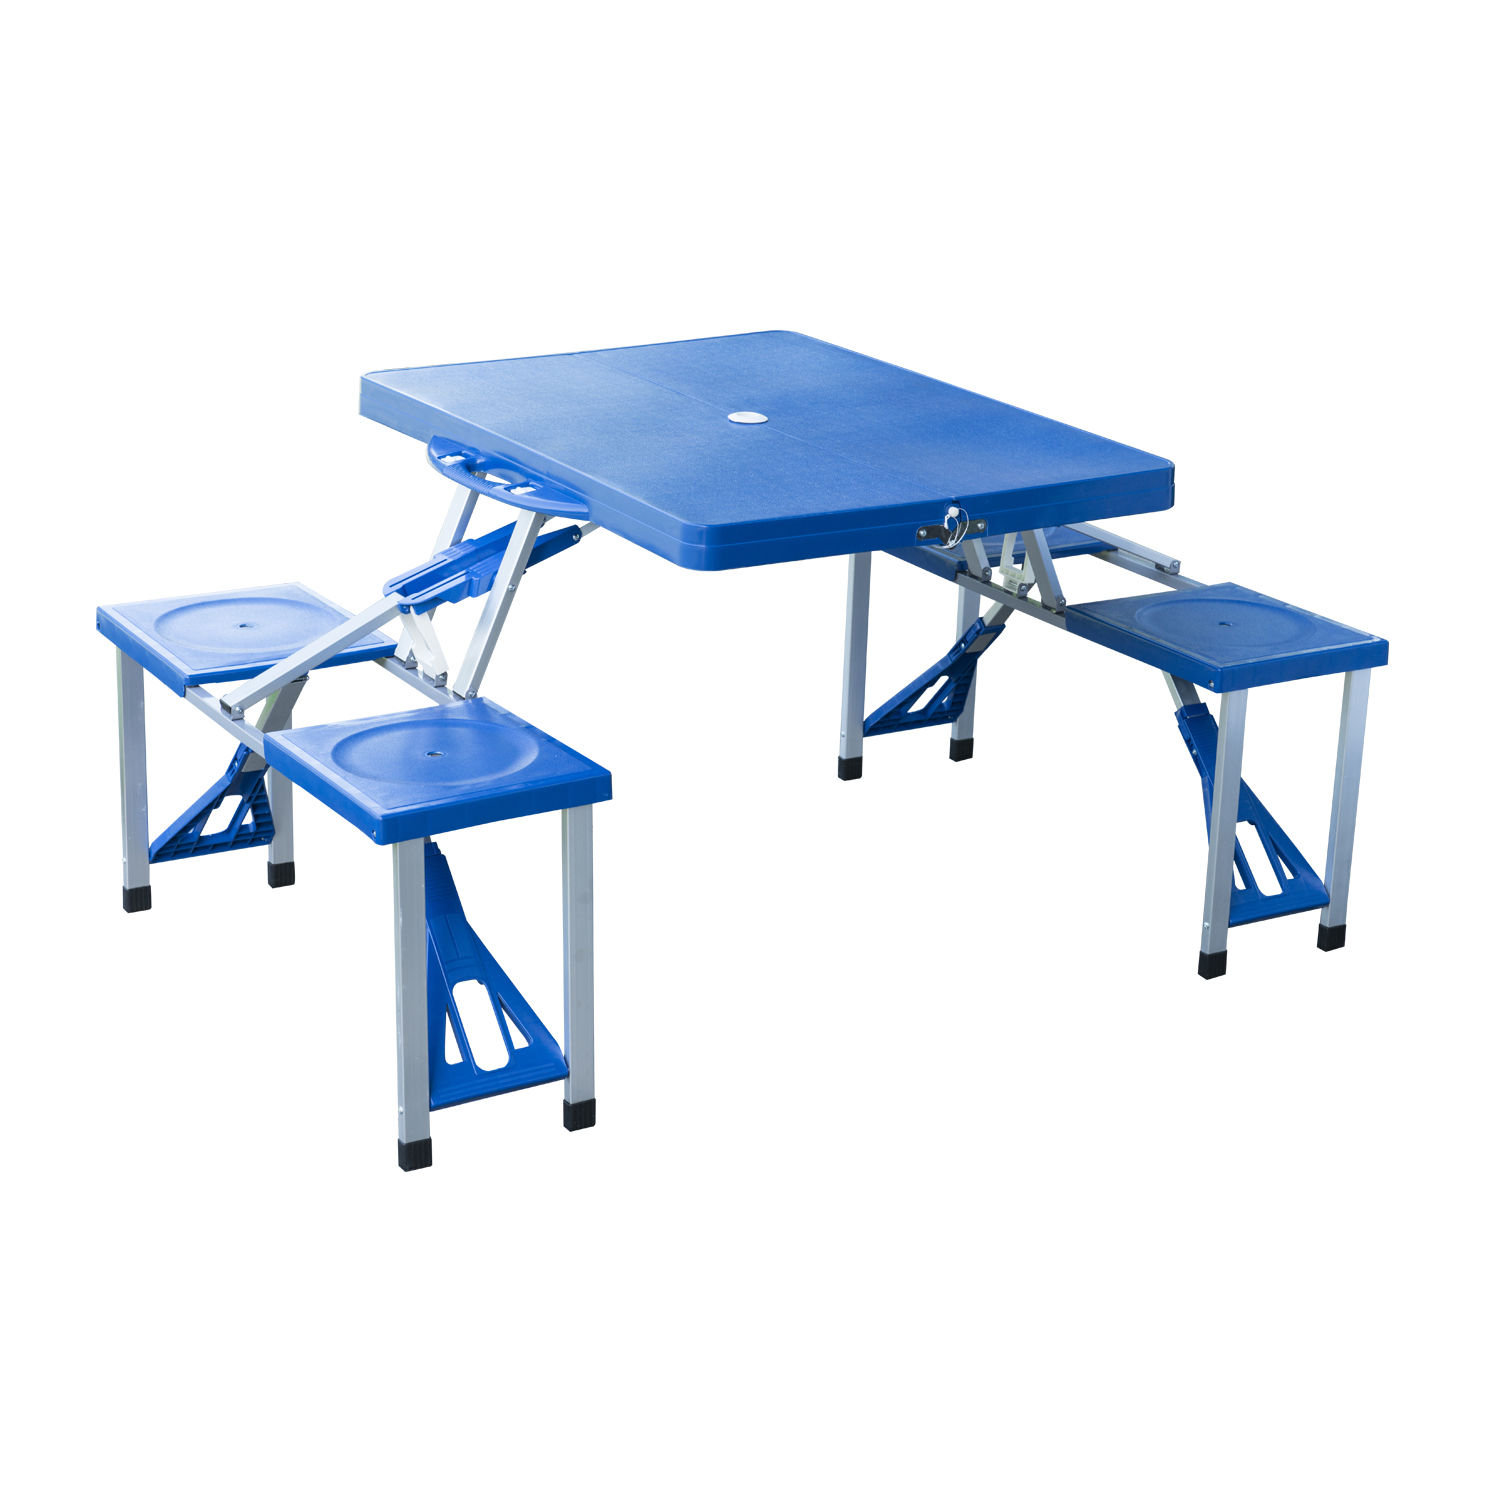 folding picnic table compact product image outsunny outdoor portable suitcase folding picnic table foldable tables walmartcom